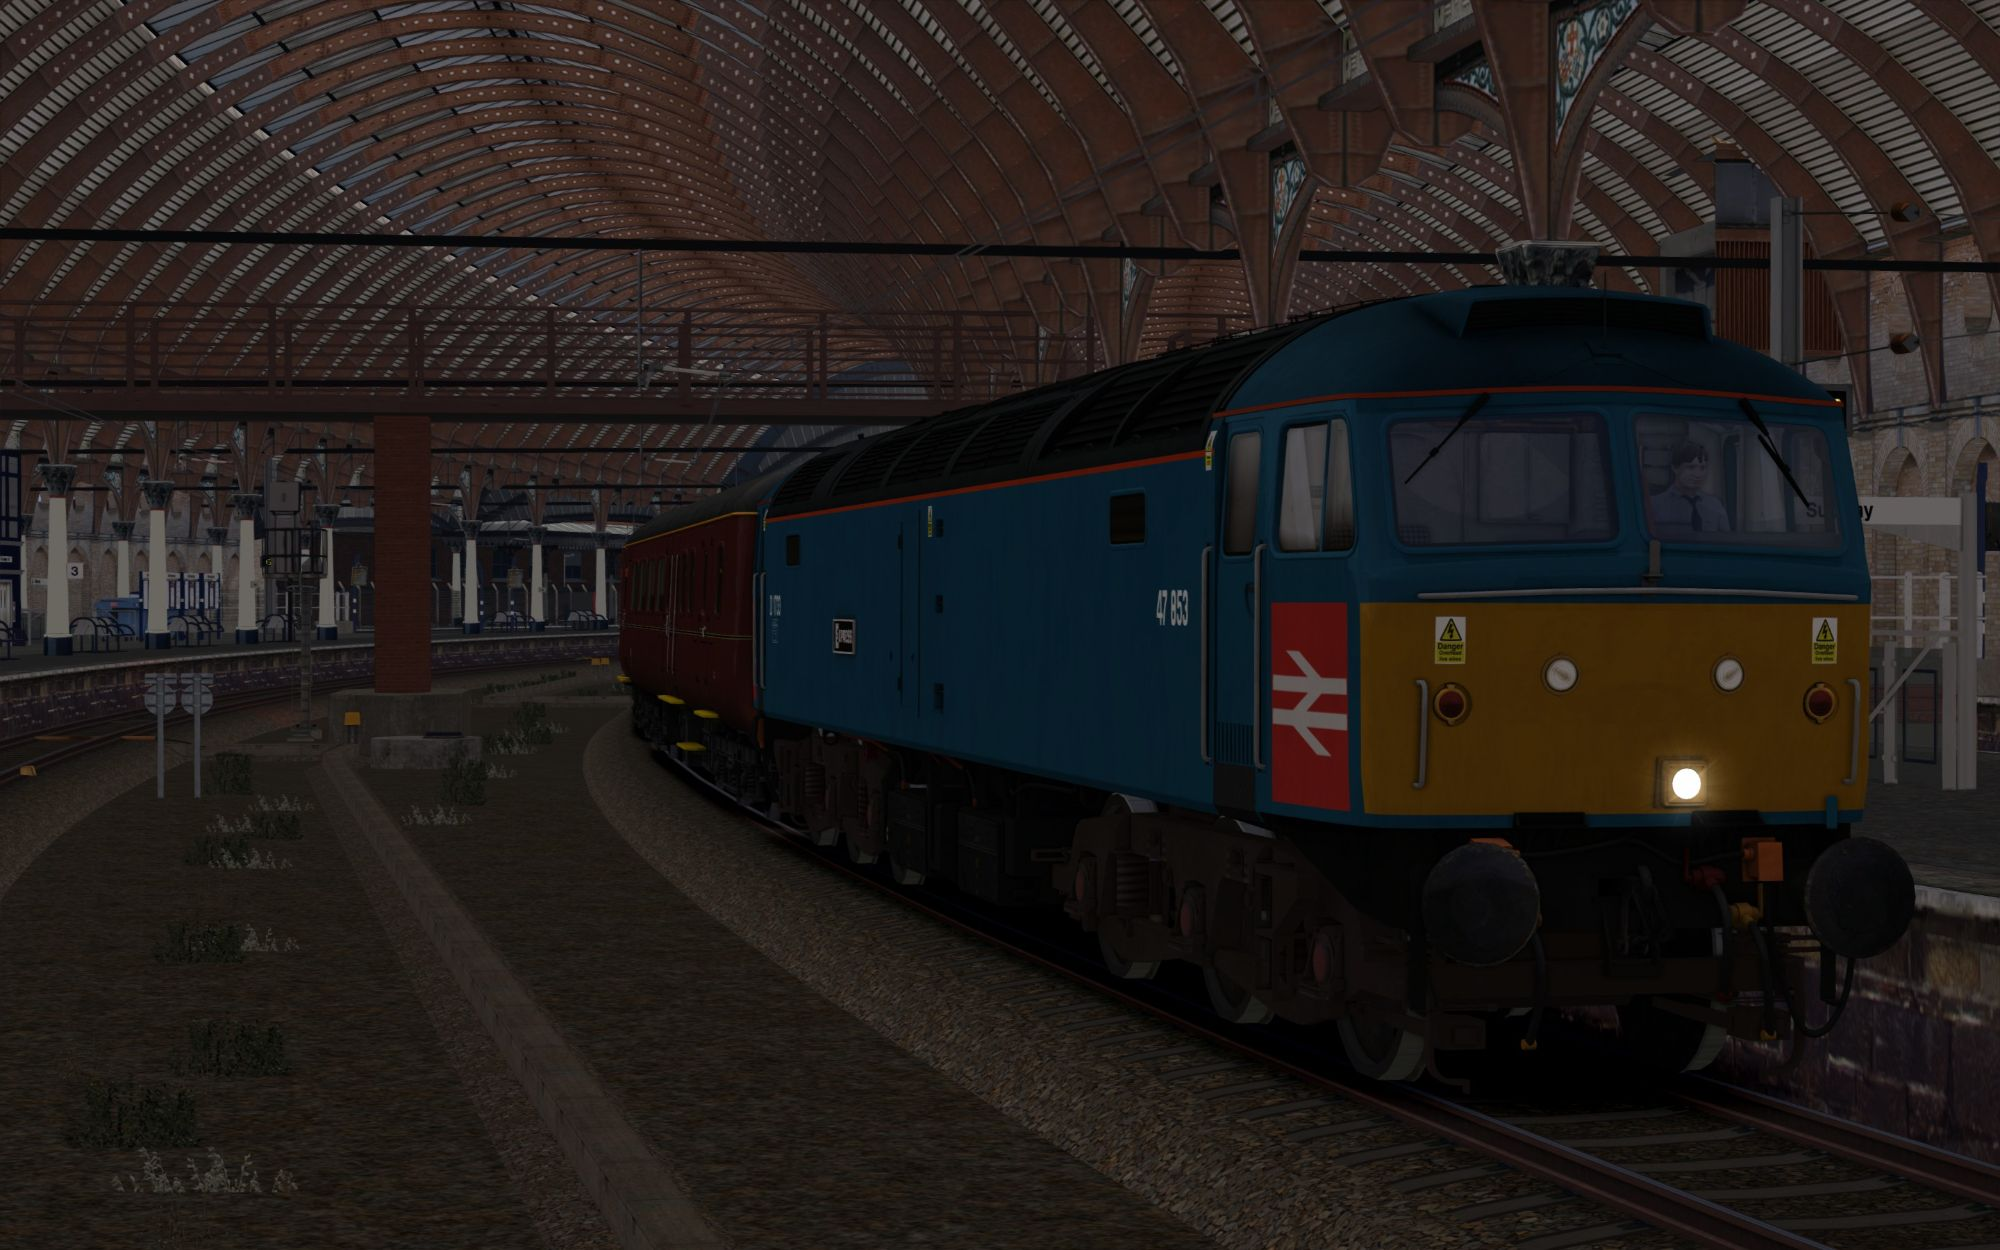 Image showing screenshot of the 1Z26 - 1626 York to Sunderland scenario